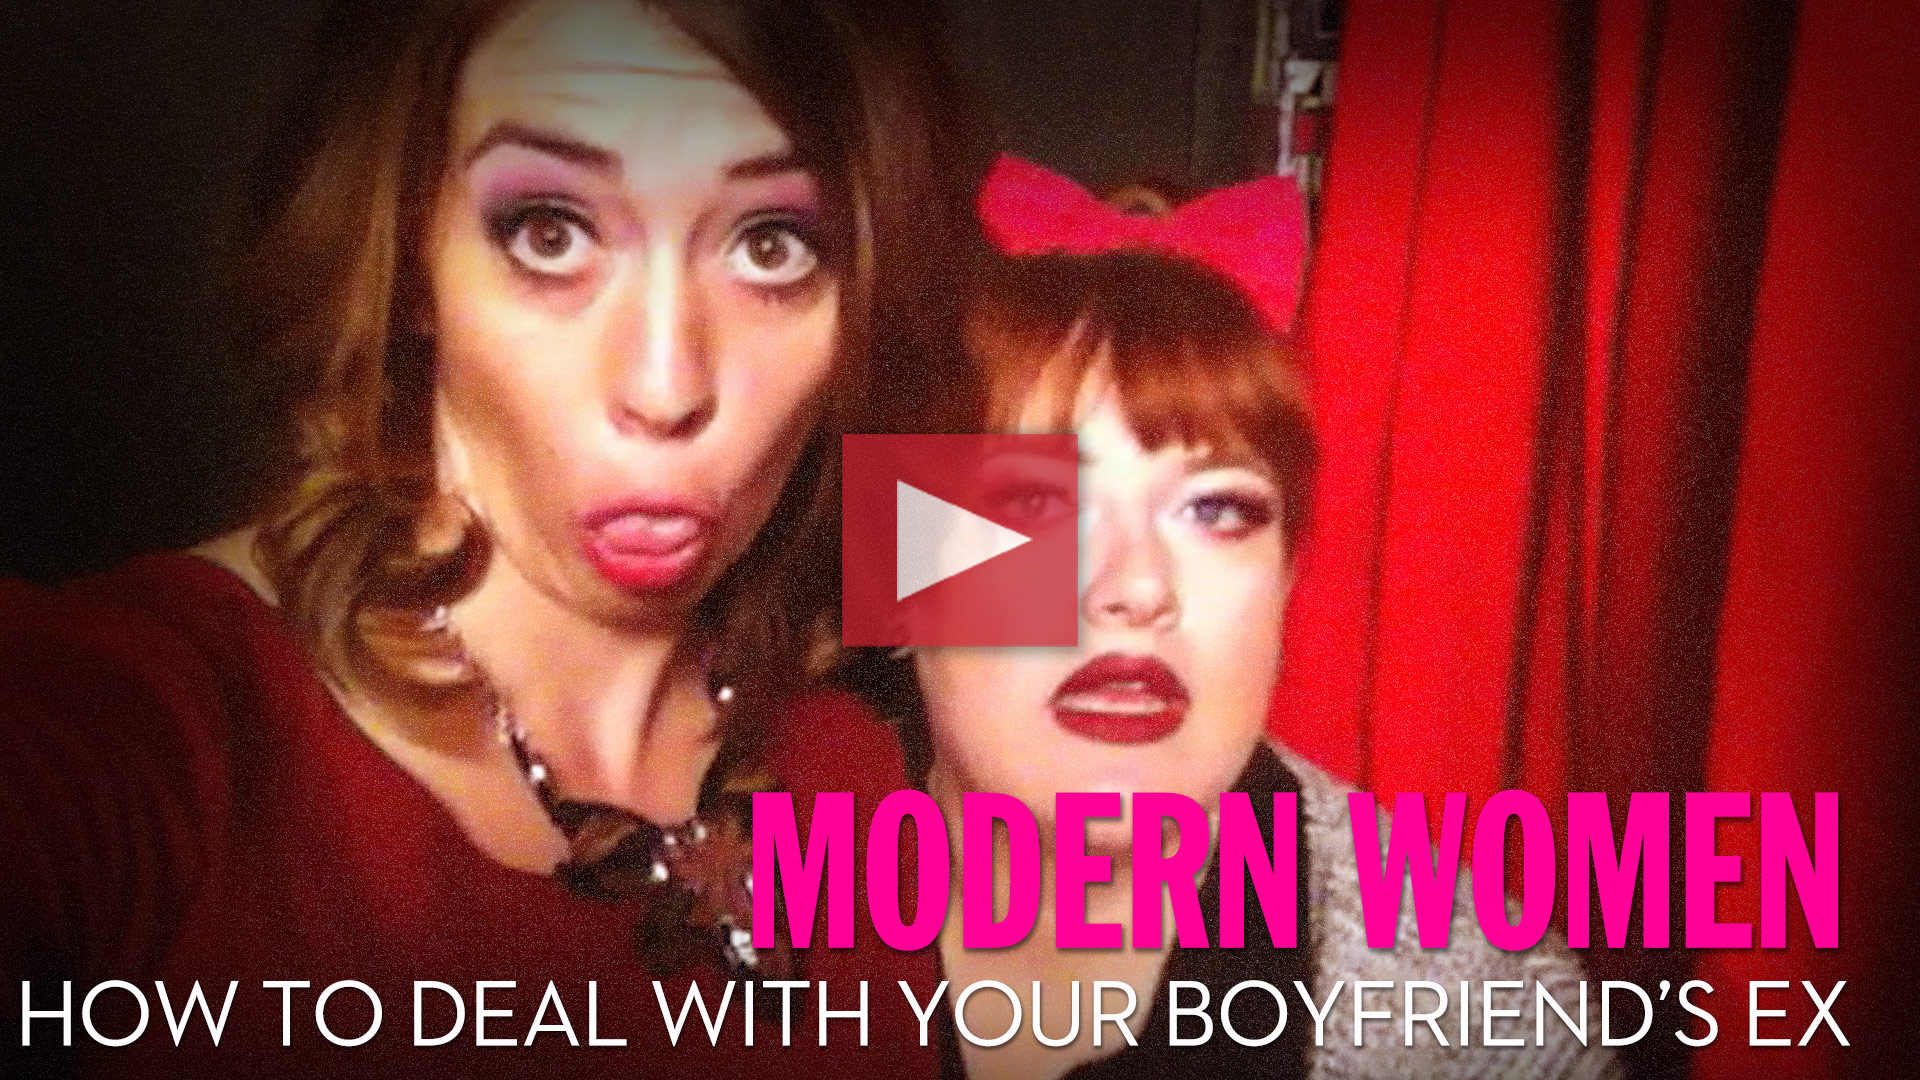 How to Deal With Your Boyfriend's Ex – Modern Women S2 E2